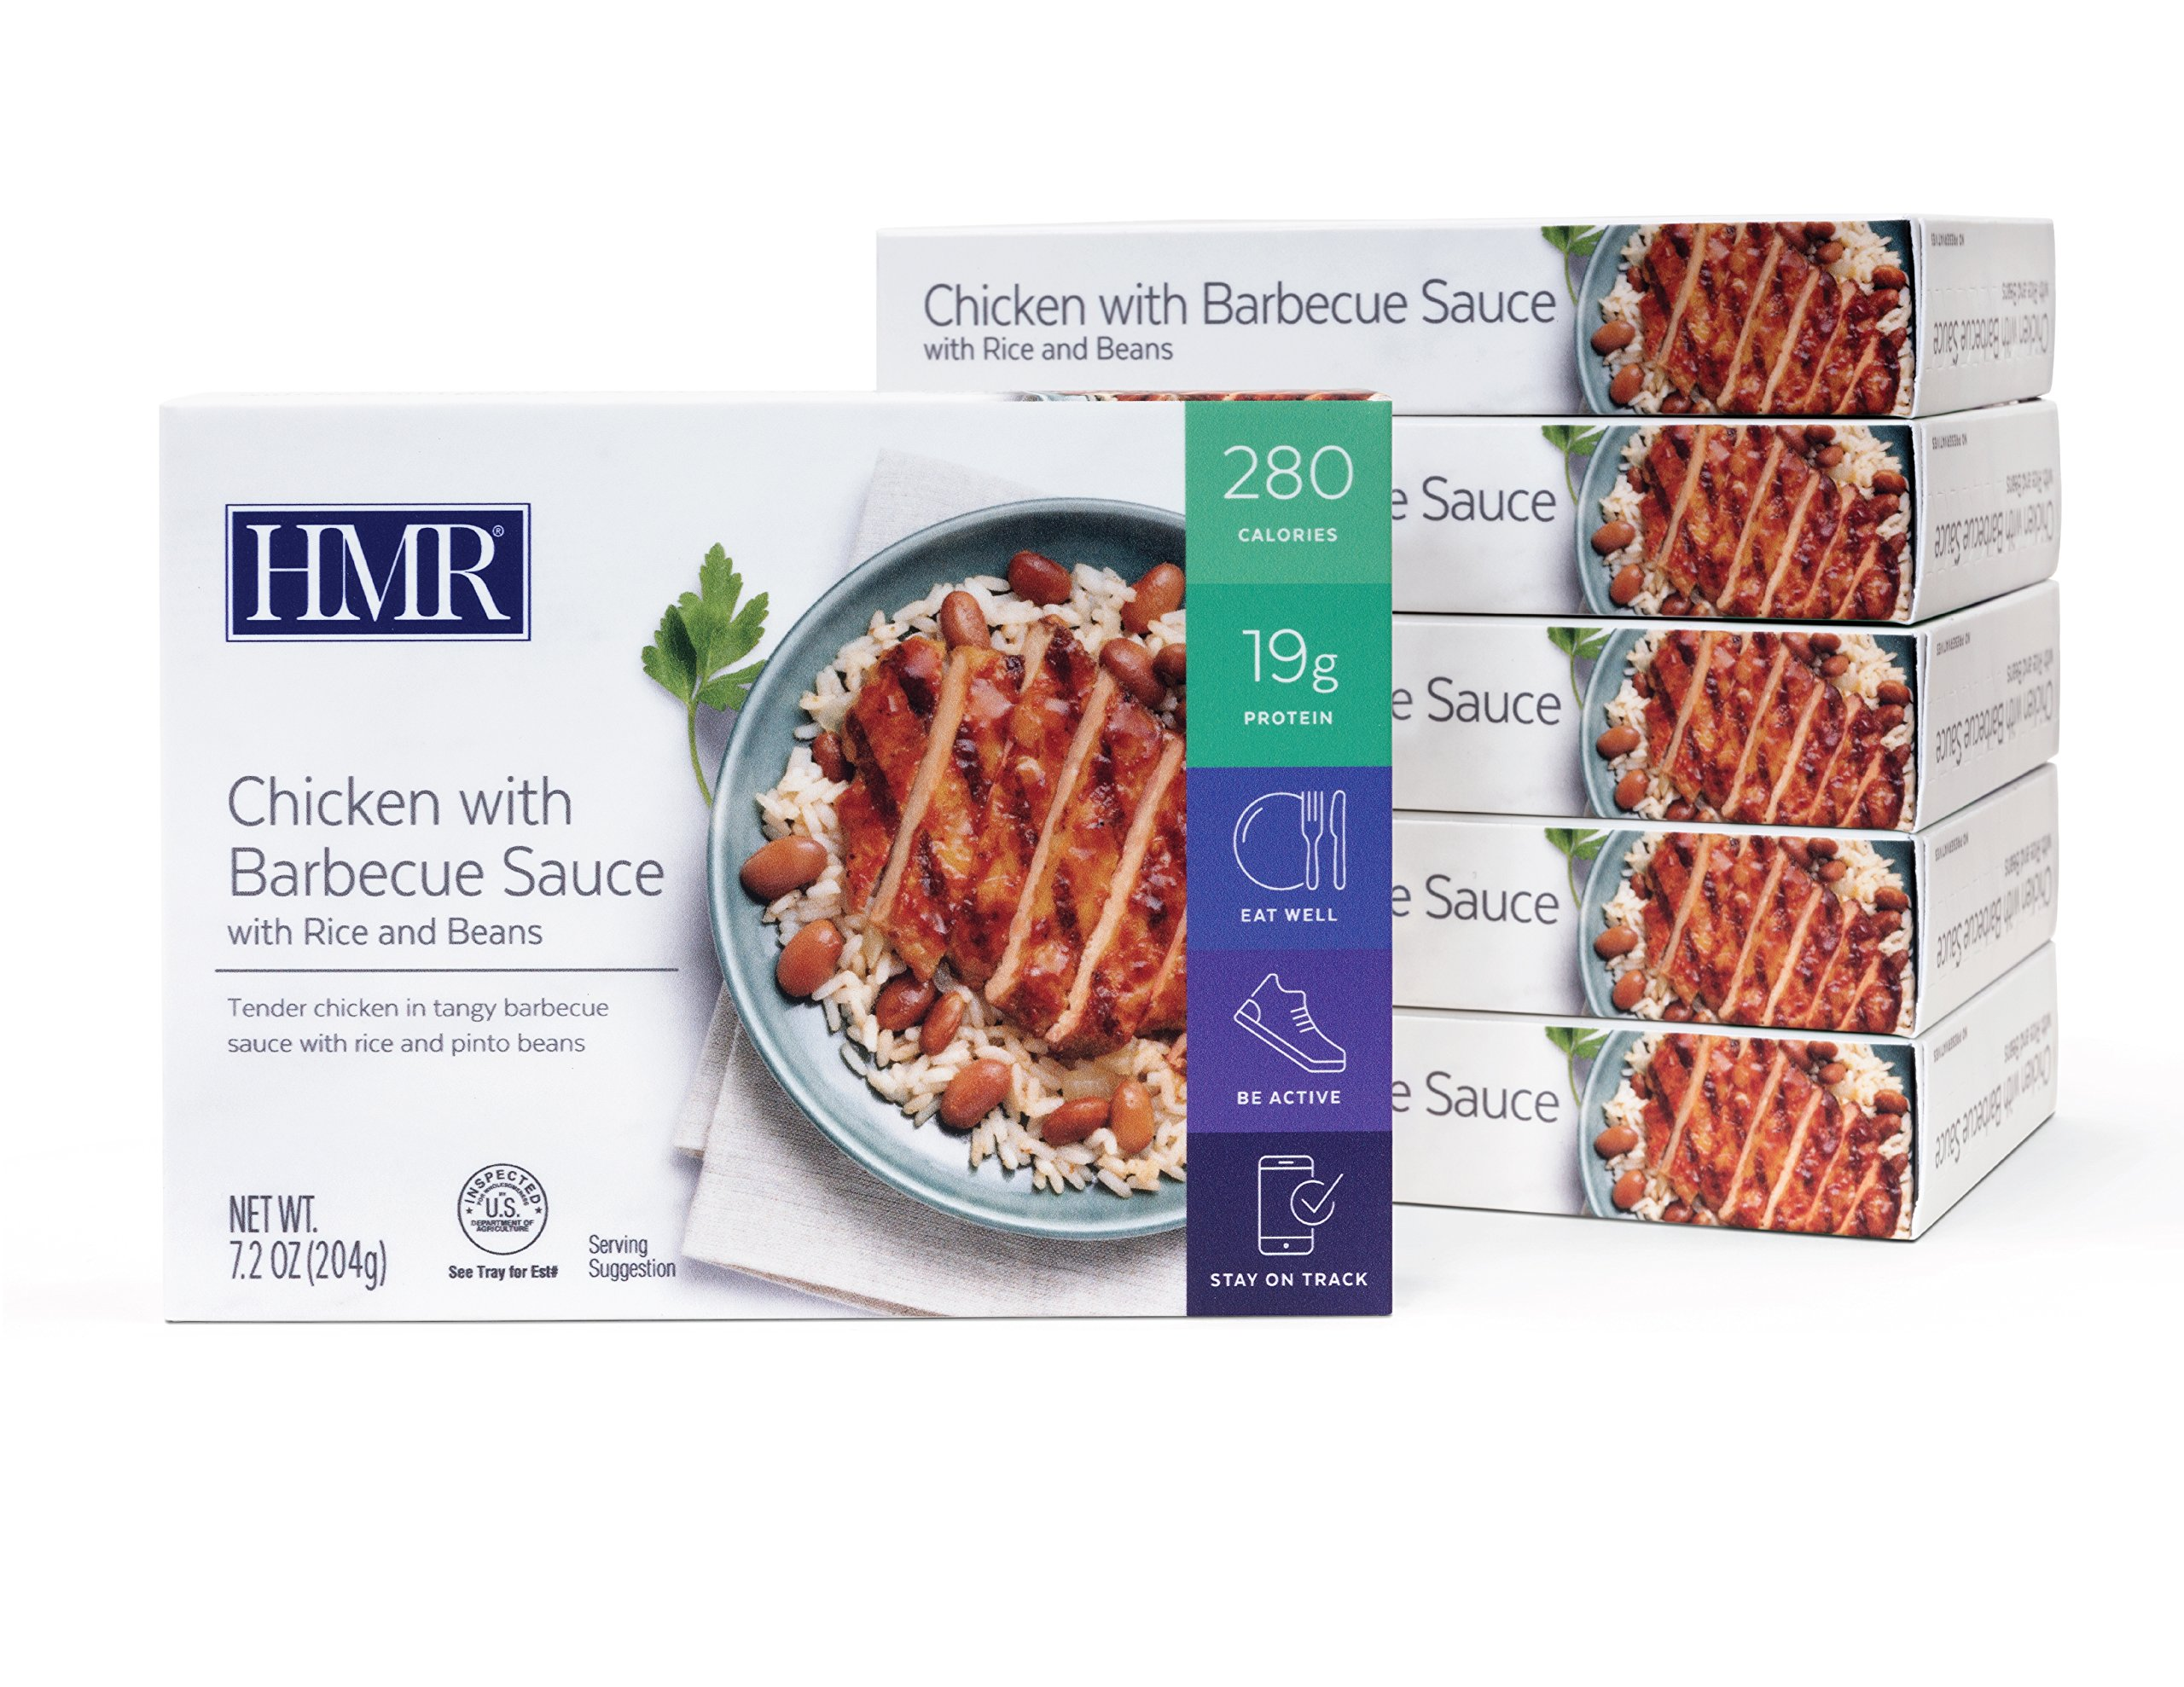 HMR Chicken with Barbecue Sauce with Rice and Beans Entree, 7.2 oz. Servings, 6 Count